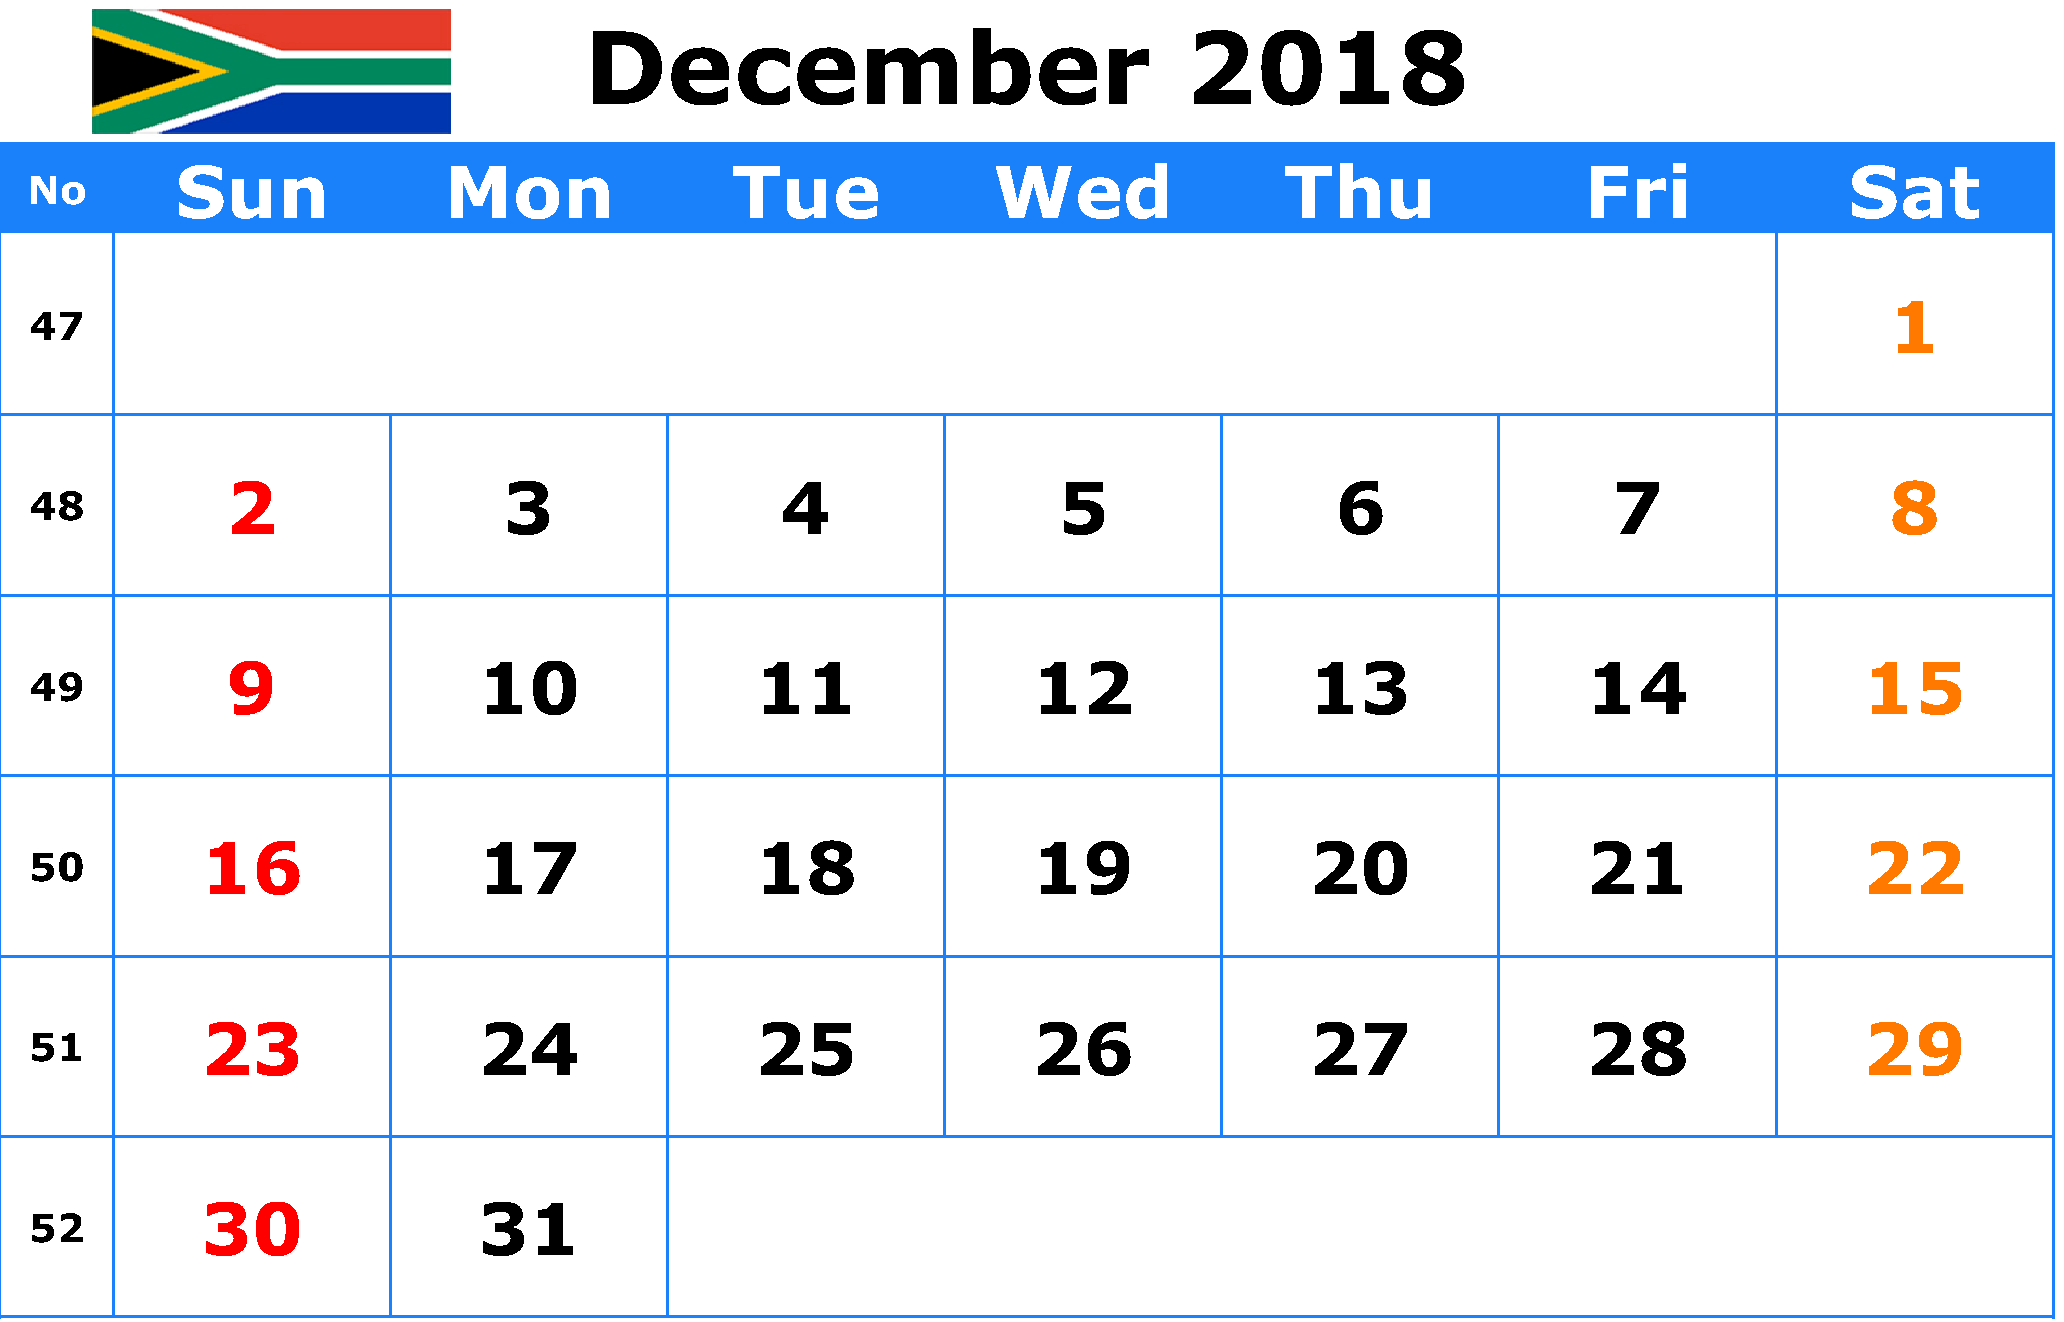 December 2018 Calendar South Africa With Holidays